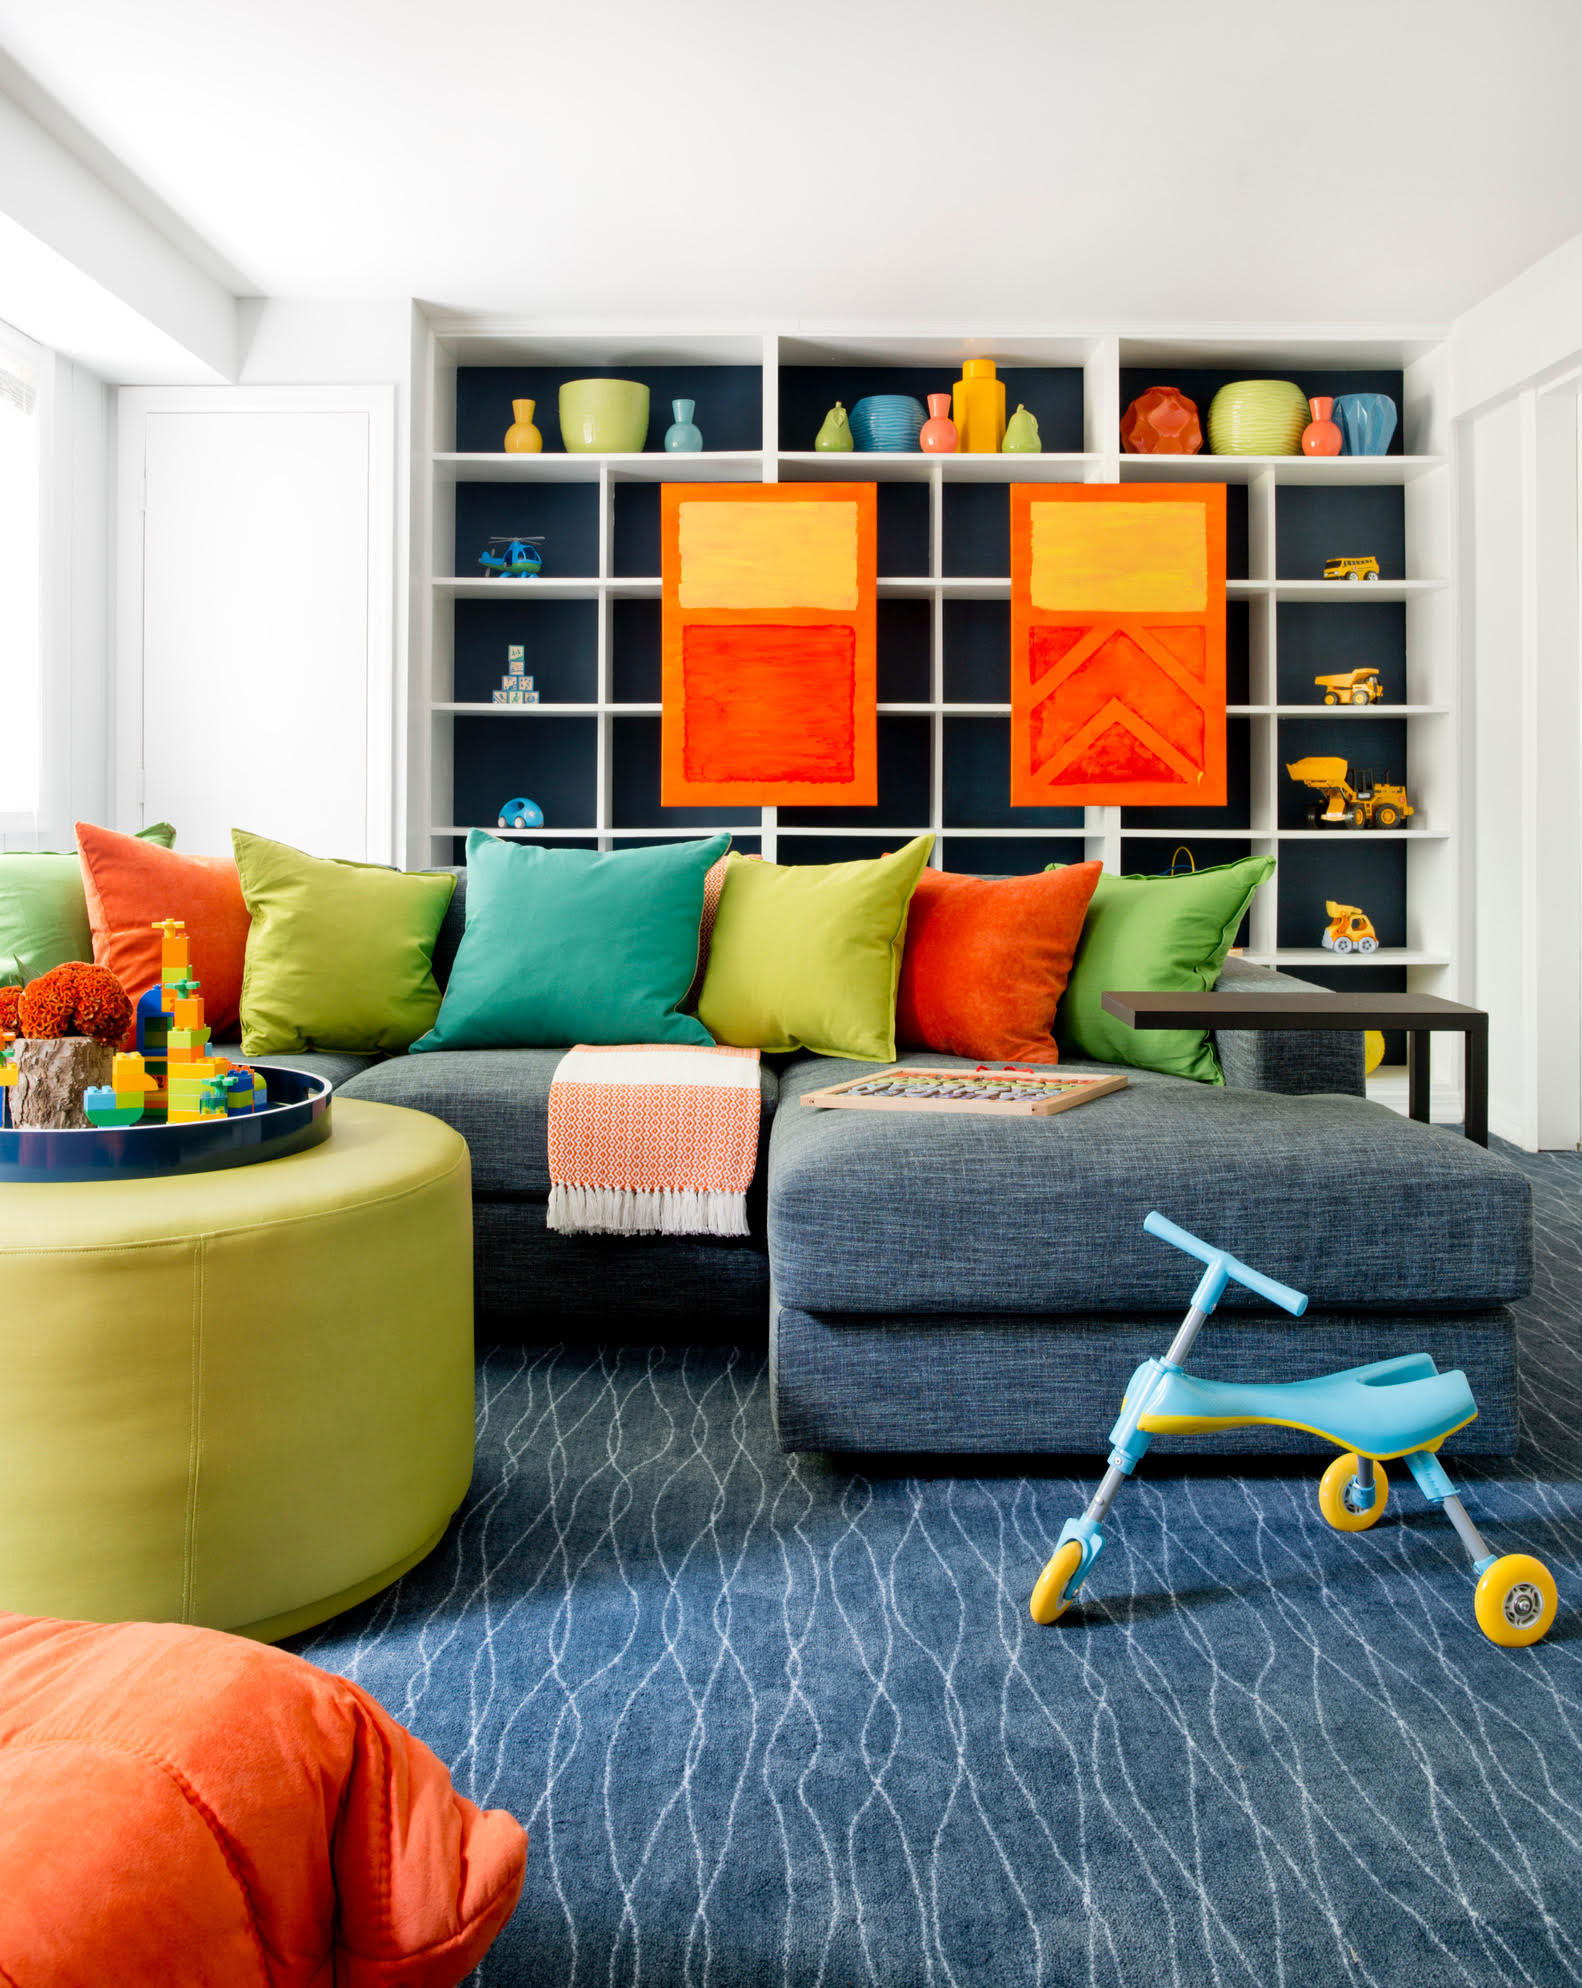 """5. Deep Blue  """"In 2017, people are embracing color, and a deep blue is an easy choice because it's practically a neutral. In this playroom, I used Sherwin Williams' Moscow Midnight (SW 9142) for the back of the bookcase. My client and I both loved rich blue-greens, and the deep saturation of this vibrant hue grounds the bright tones in the room and adds a graphic backdrop to the accessories and toys.""""  Caroline Kopp, ofCaroline Kopp Interior Design"""